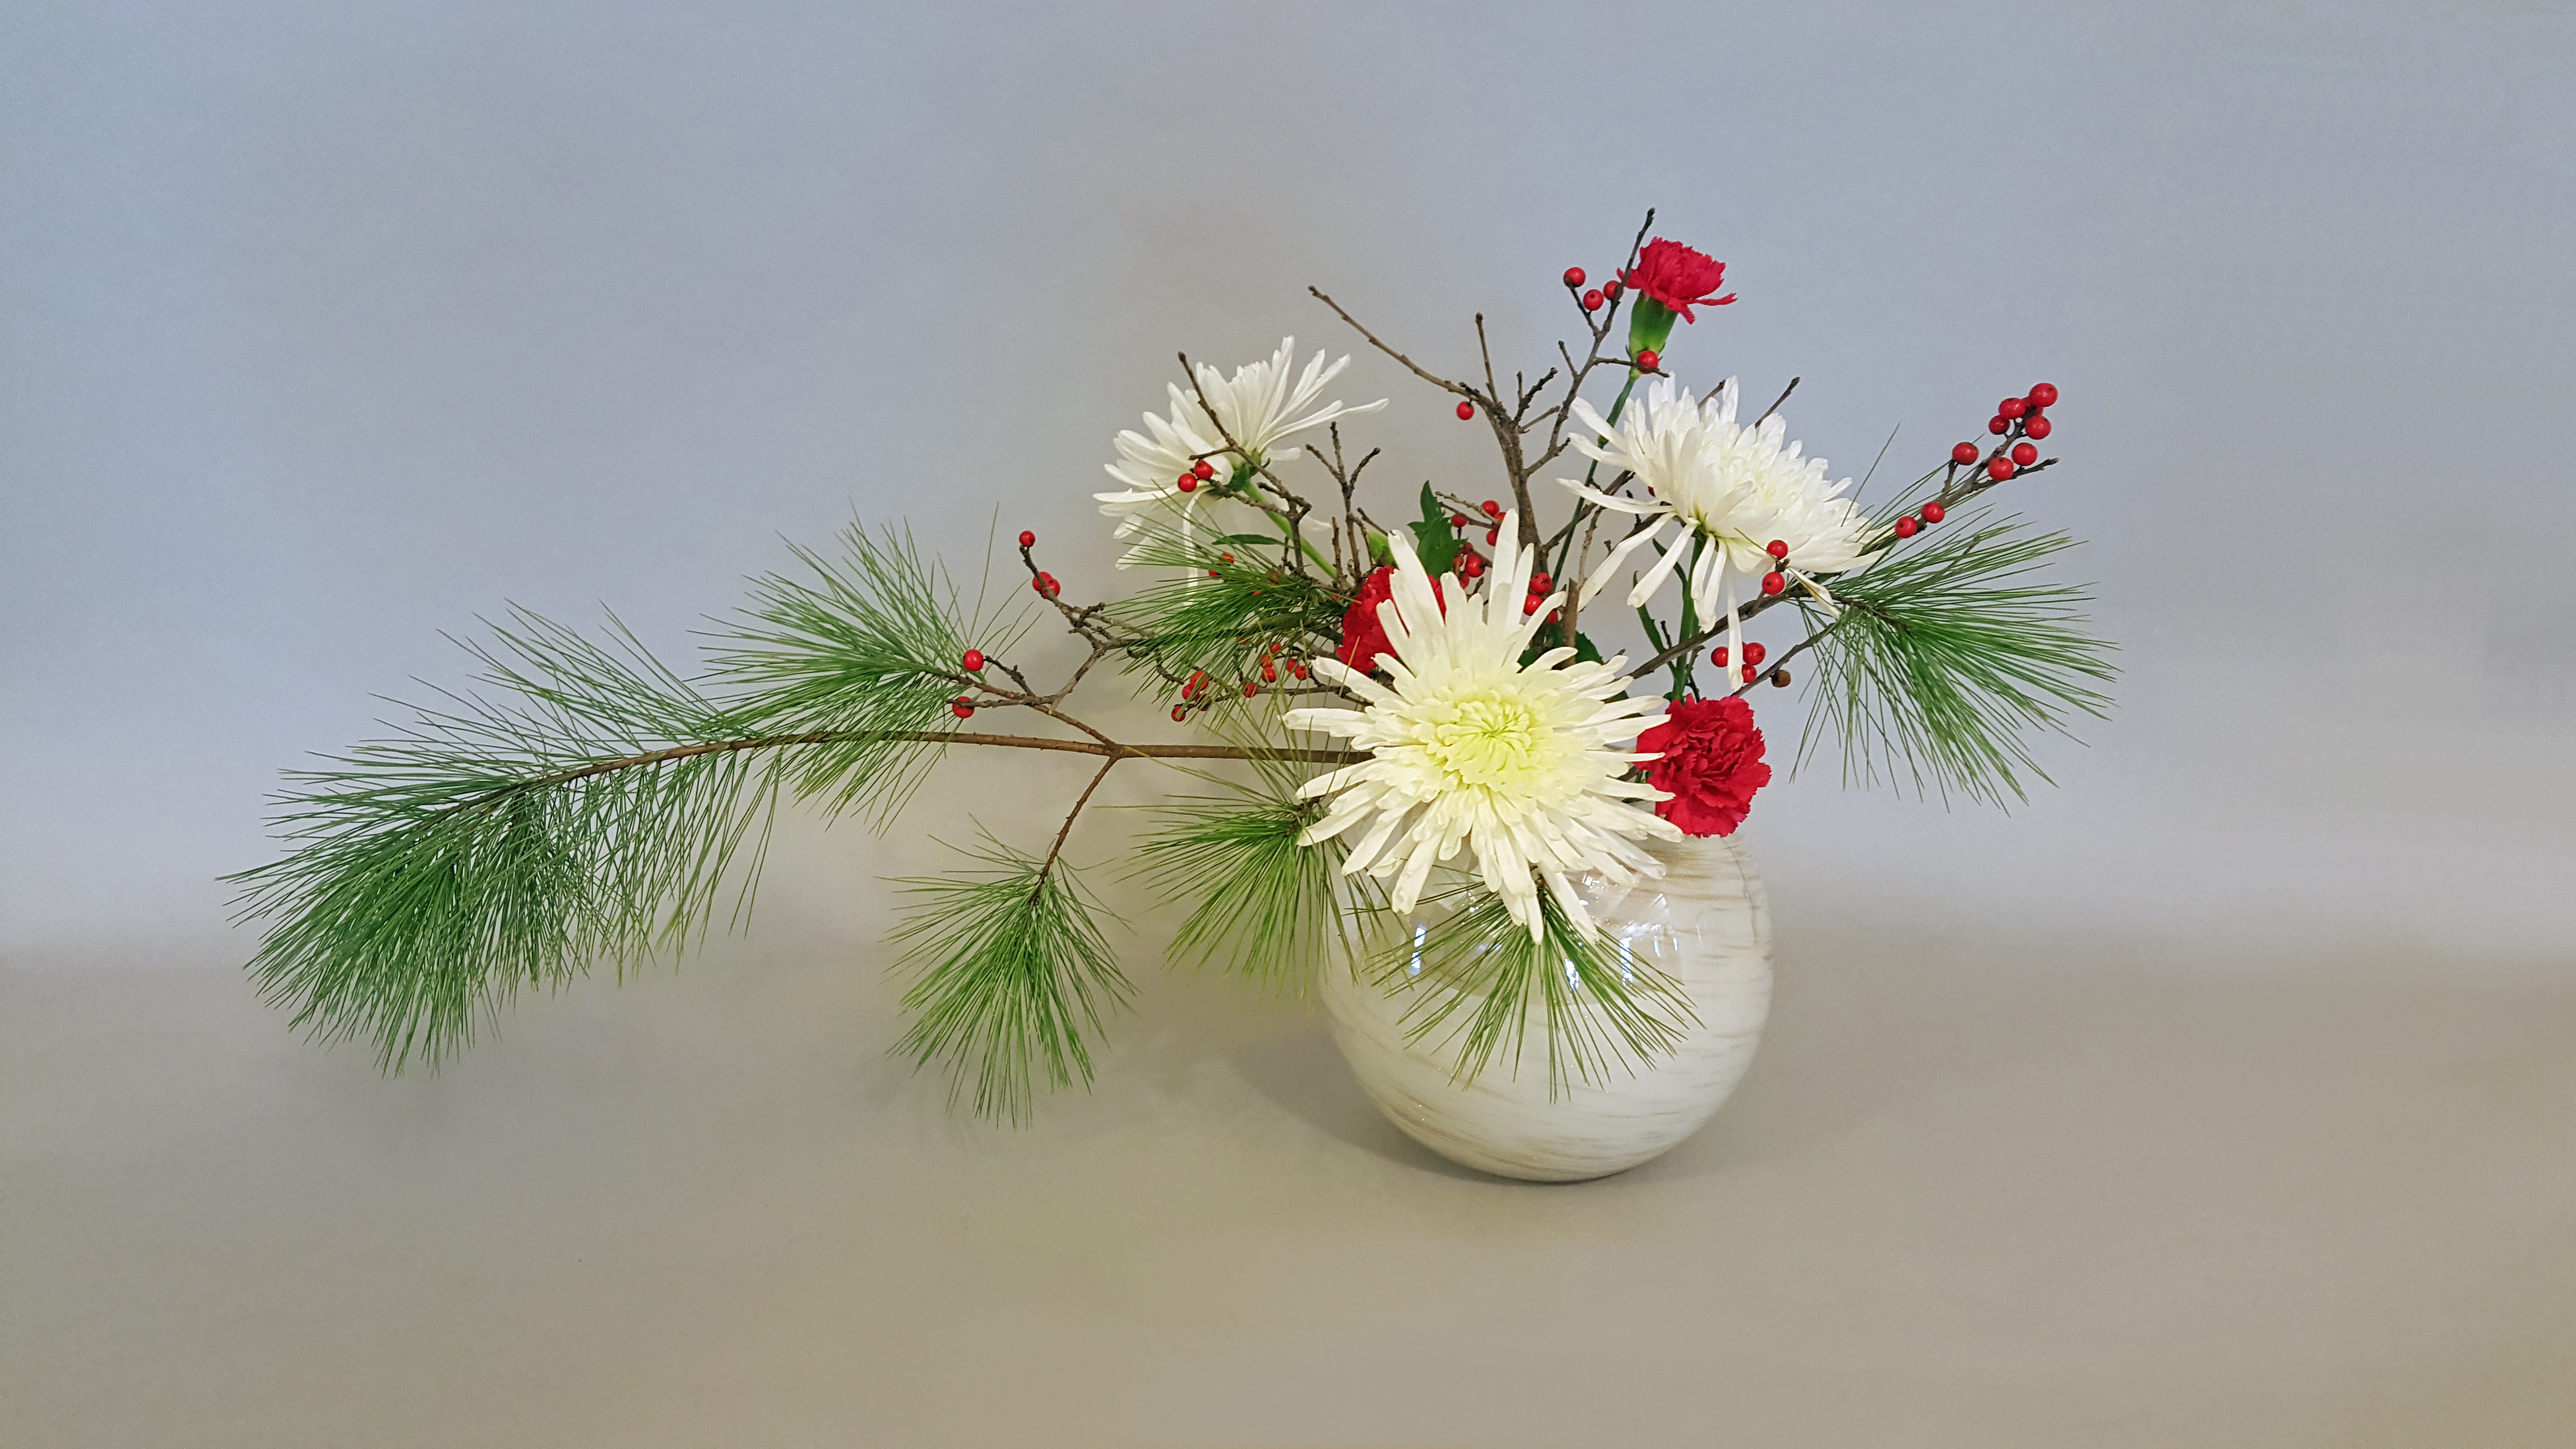 Ikebana: More Than Just Floral Design, It's a Contemplative Art